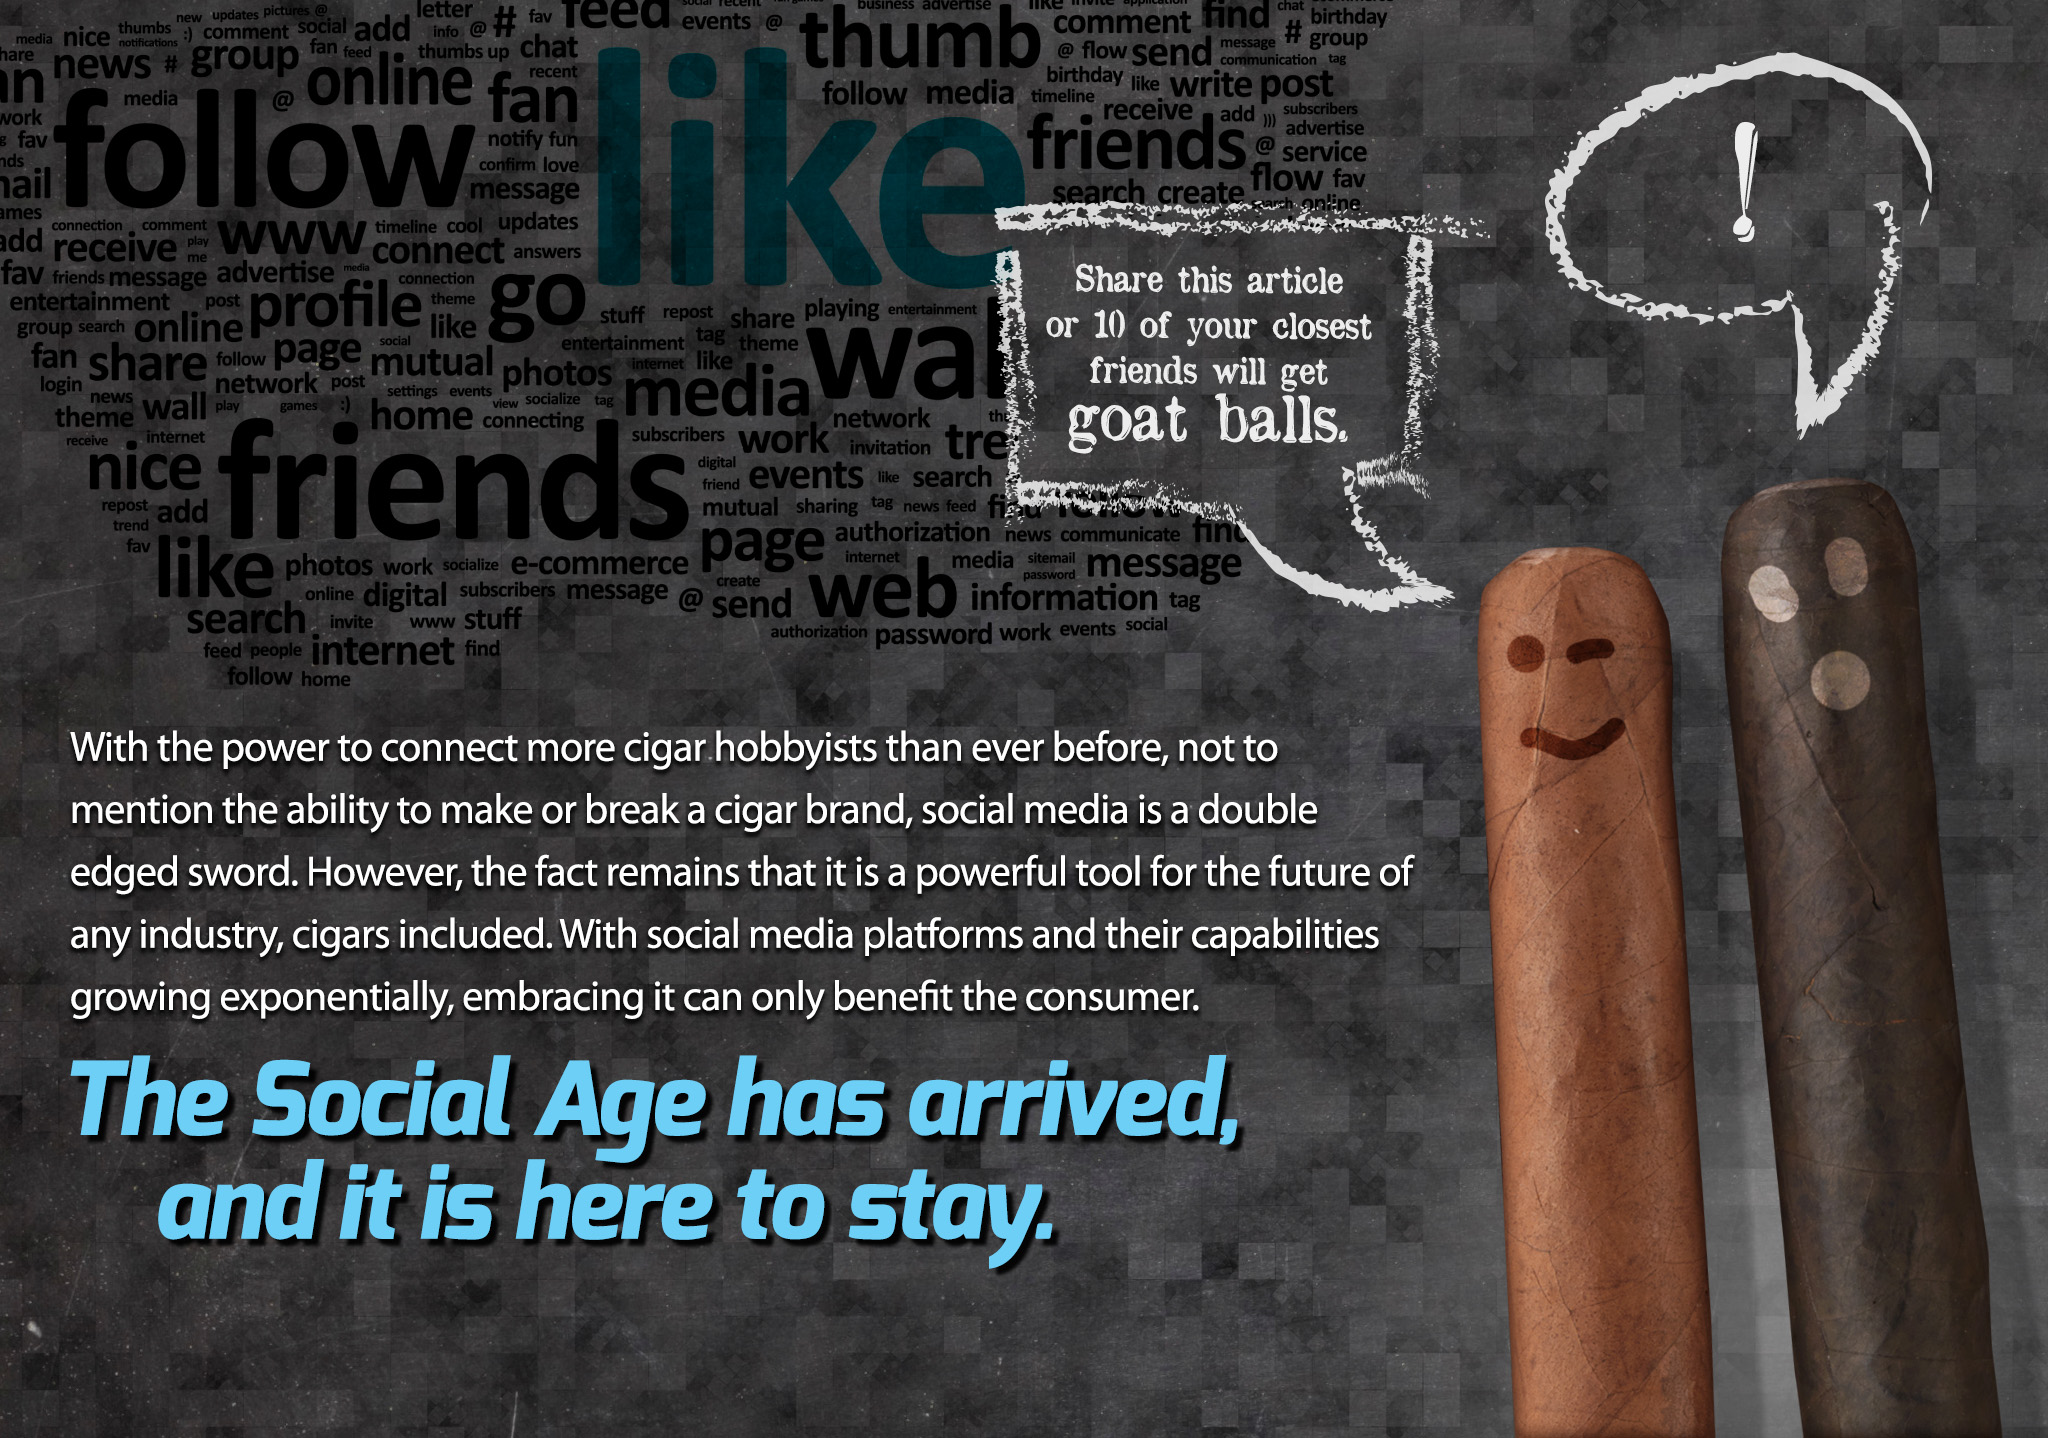 Social Media and Cigars have arrived